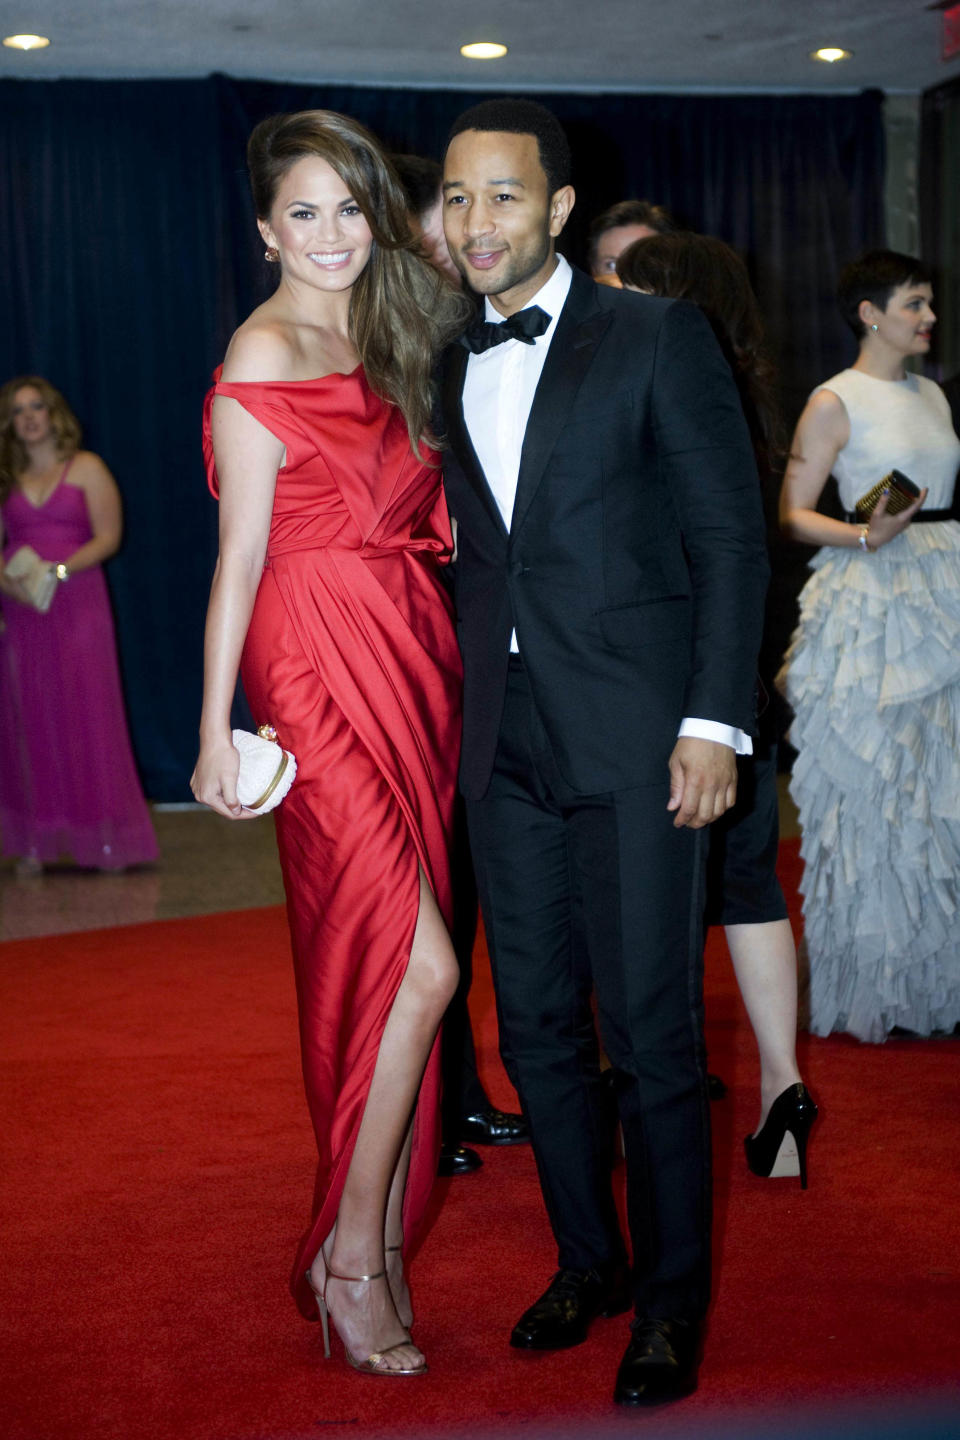 John Legend and Chrissy Teigen arrive at the White House Correspondents' Association Dinner on Saturday, April 28, 2012 in Washington.  (AP Photo/Kevin Wolf)